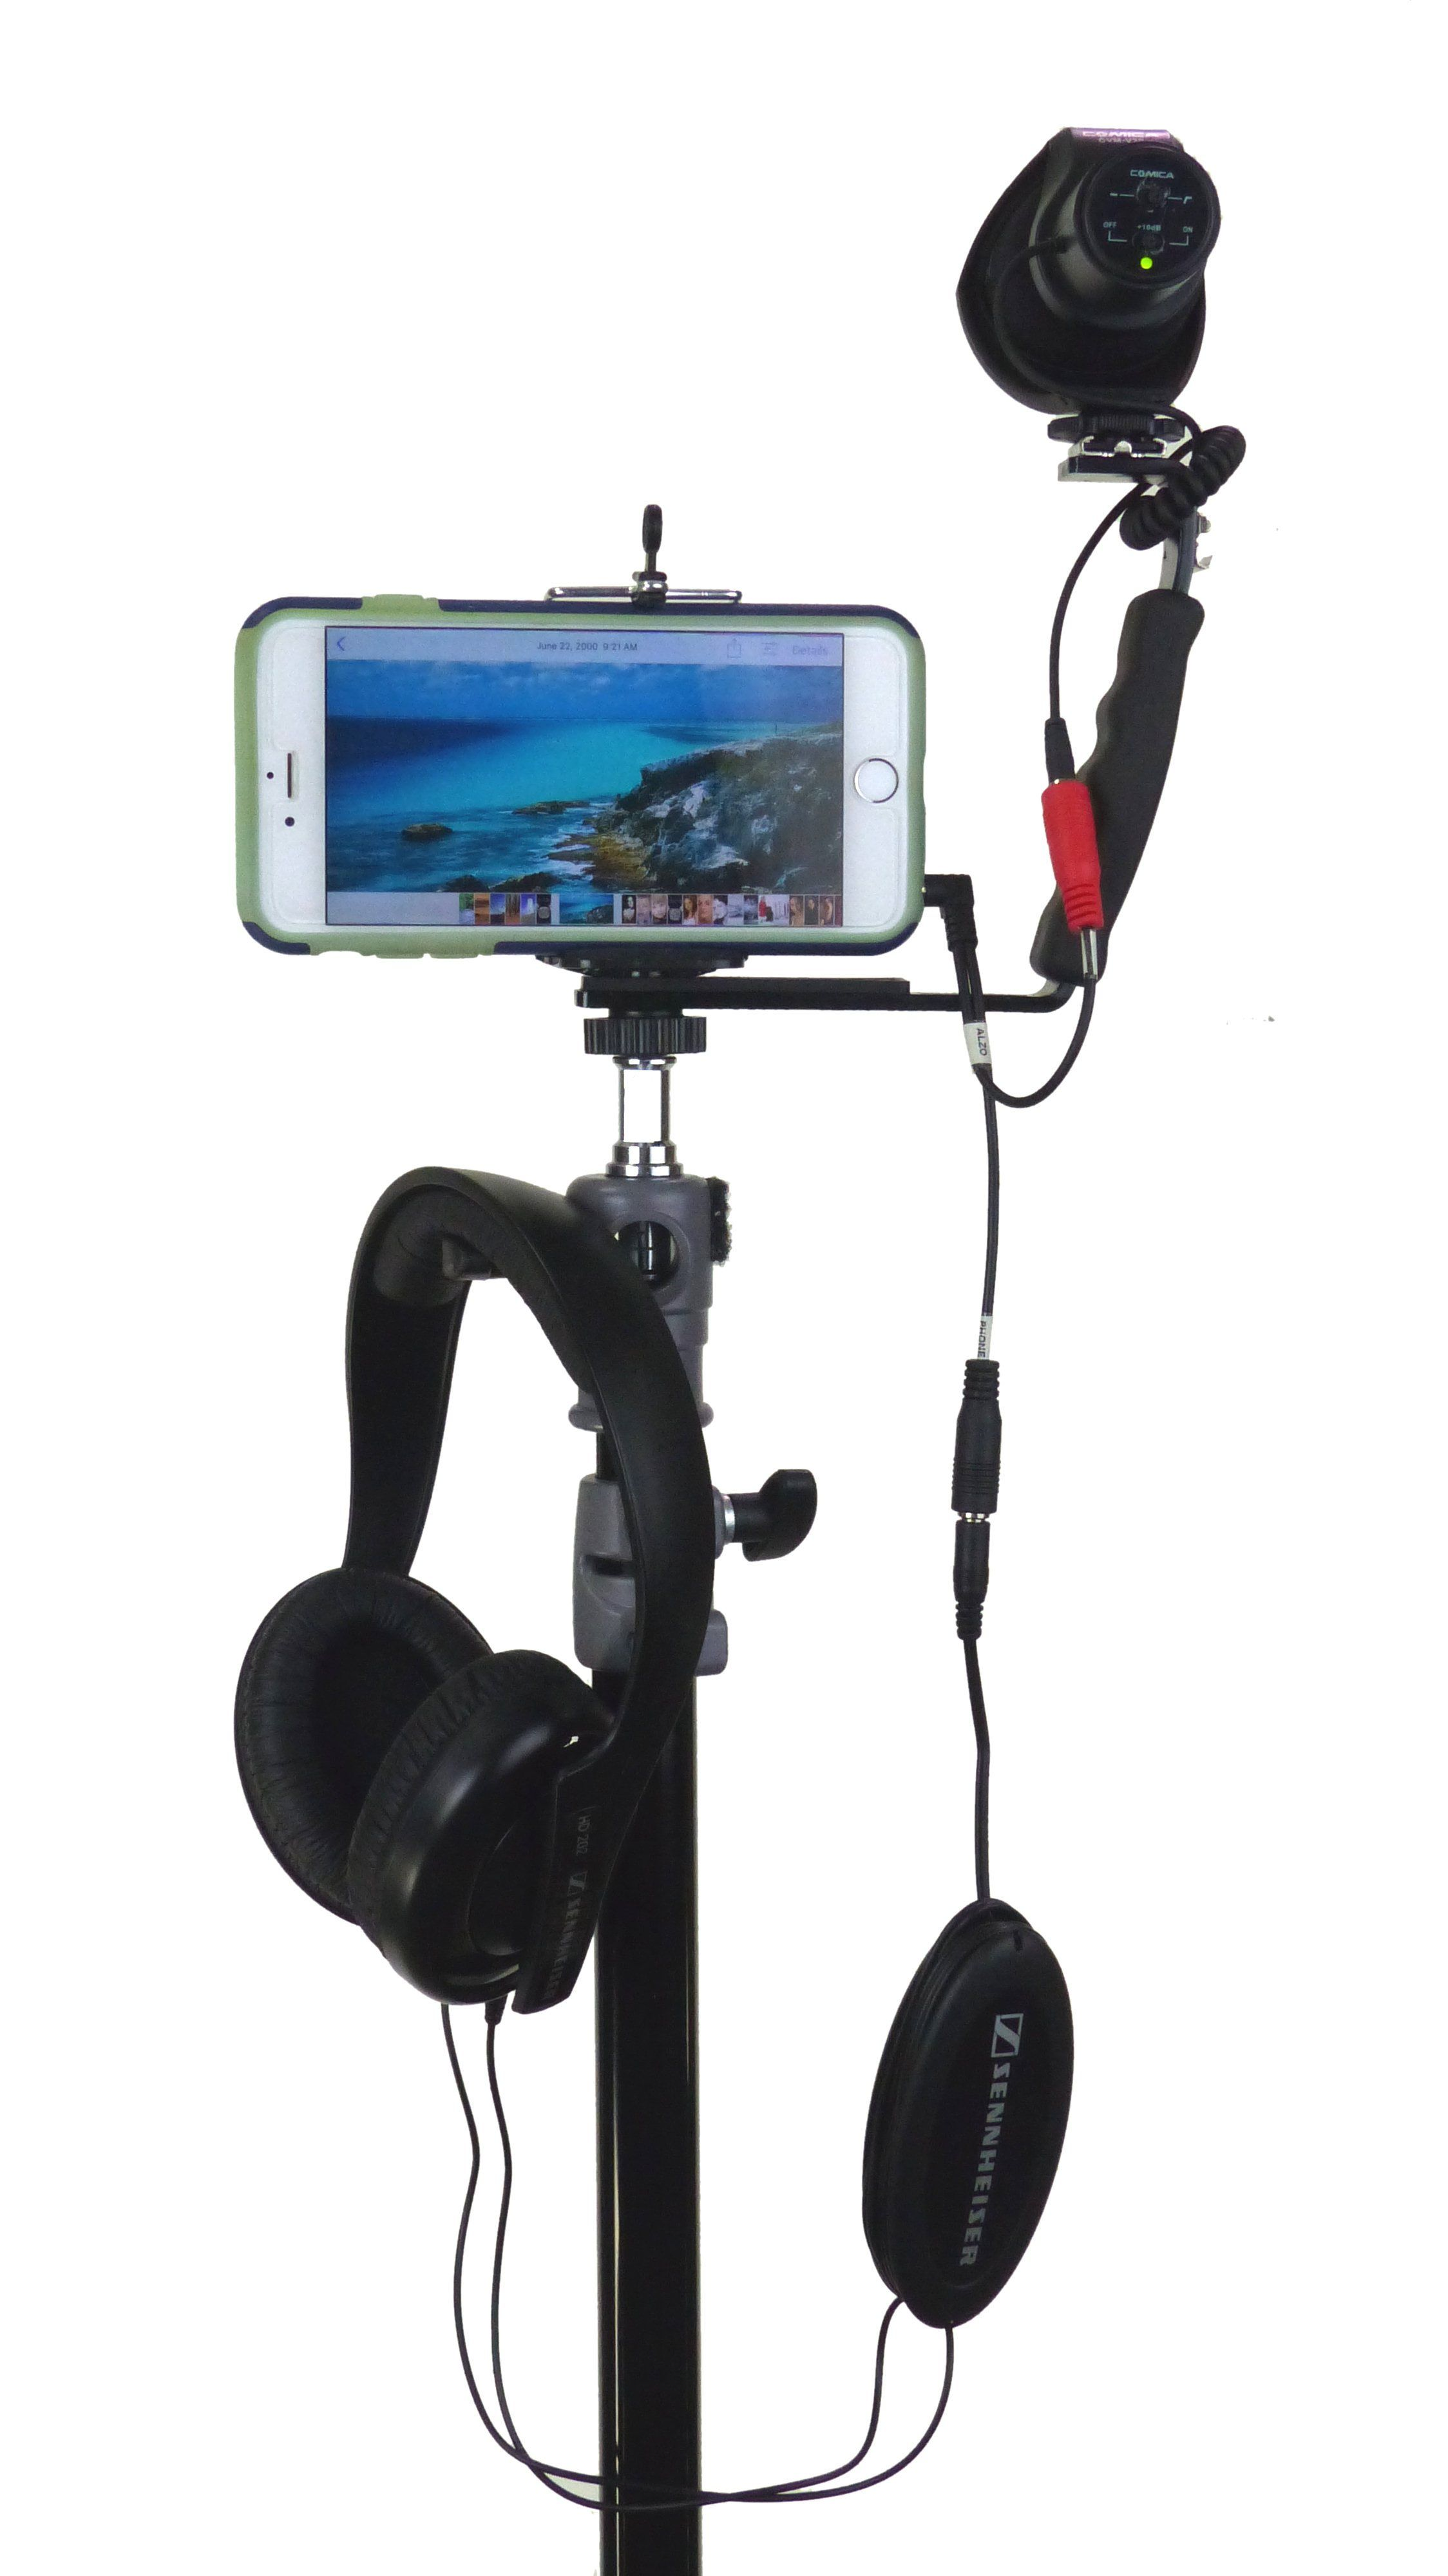 ALZO Smartphone Streaming Video Rig with Mic Headphone